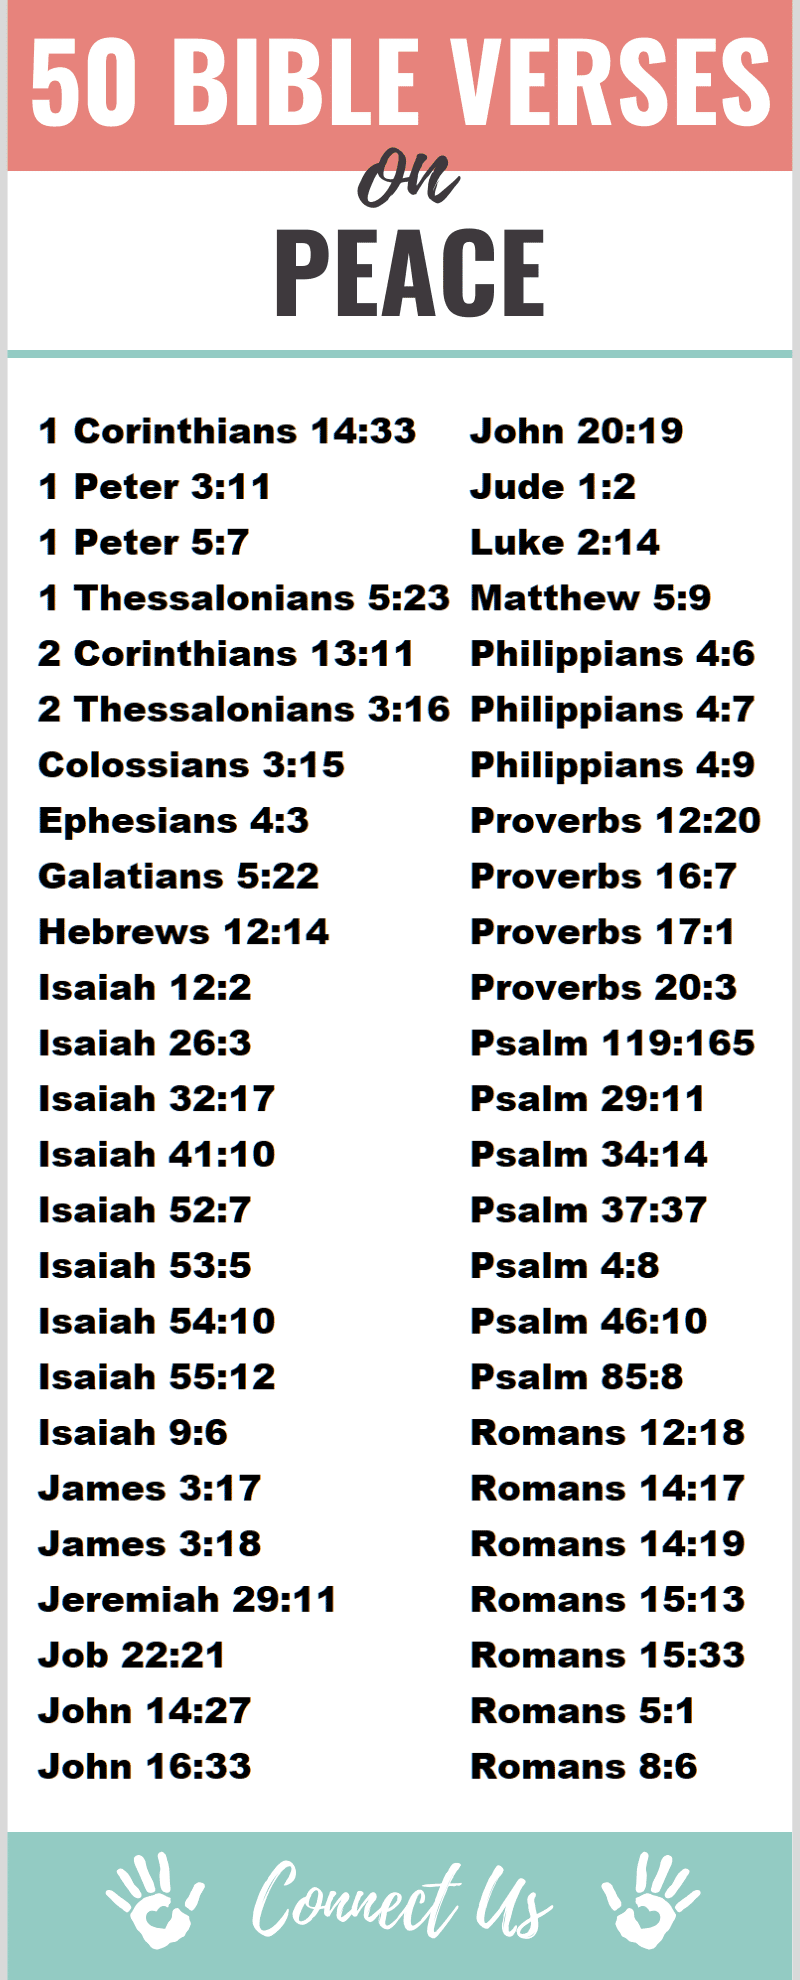 Bible Verses on Peace